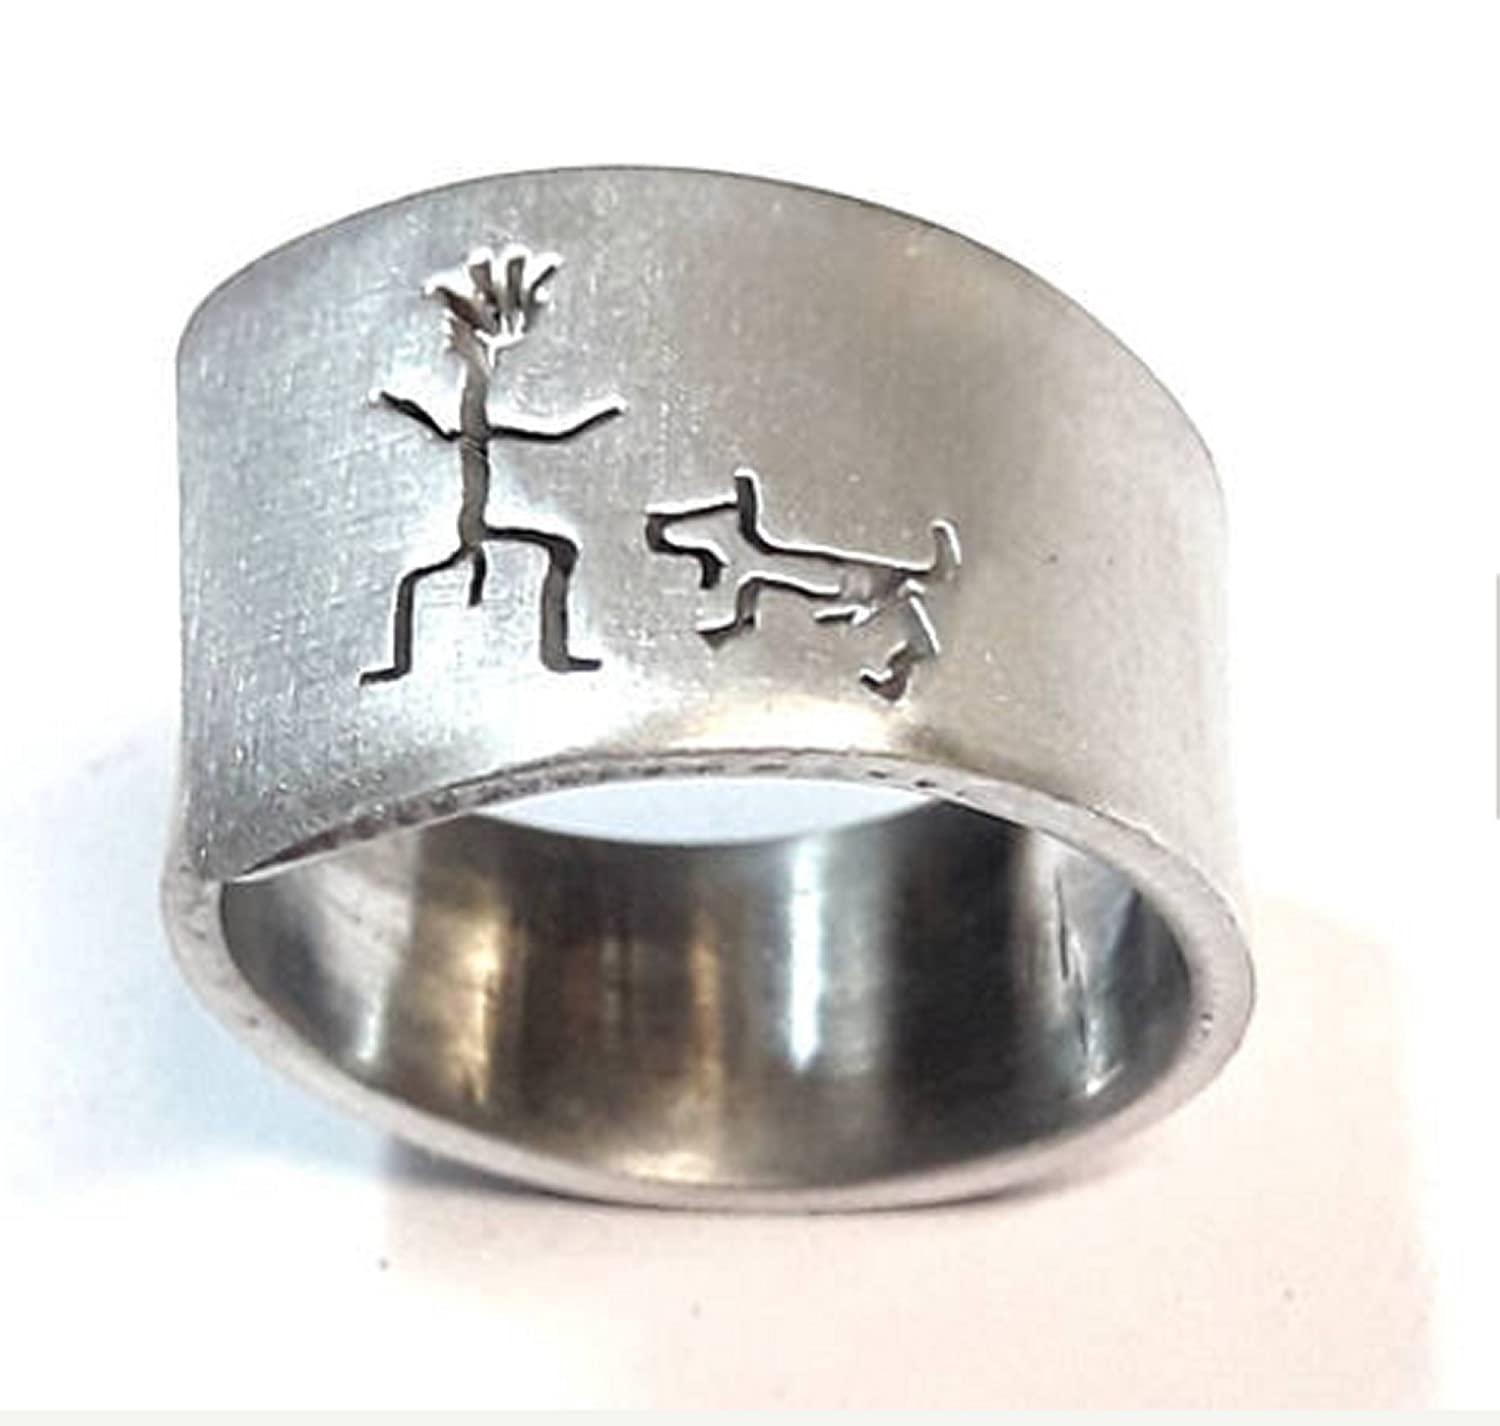 Open aluminum band ring with He and his dog, and custom text.